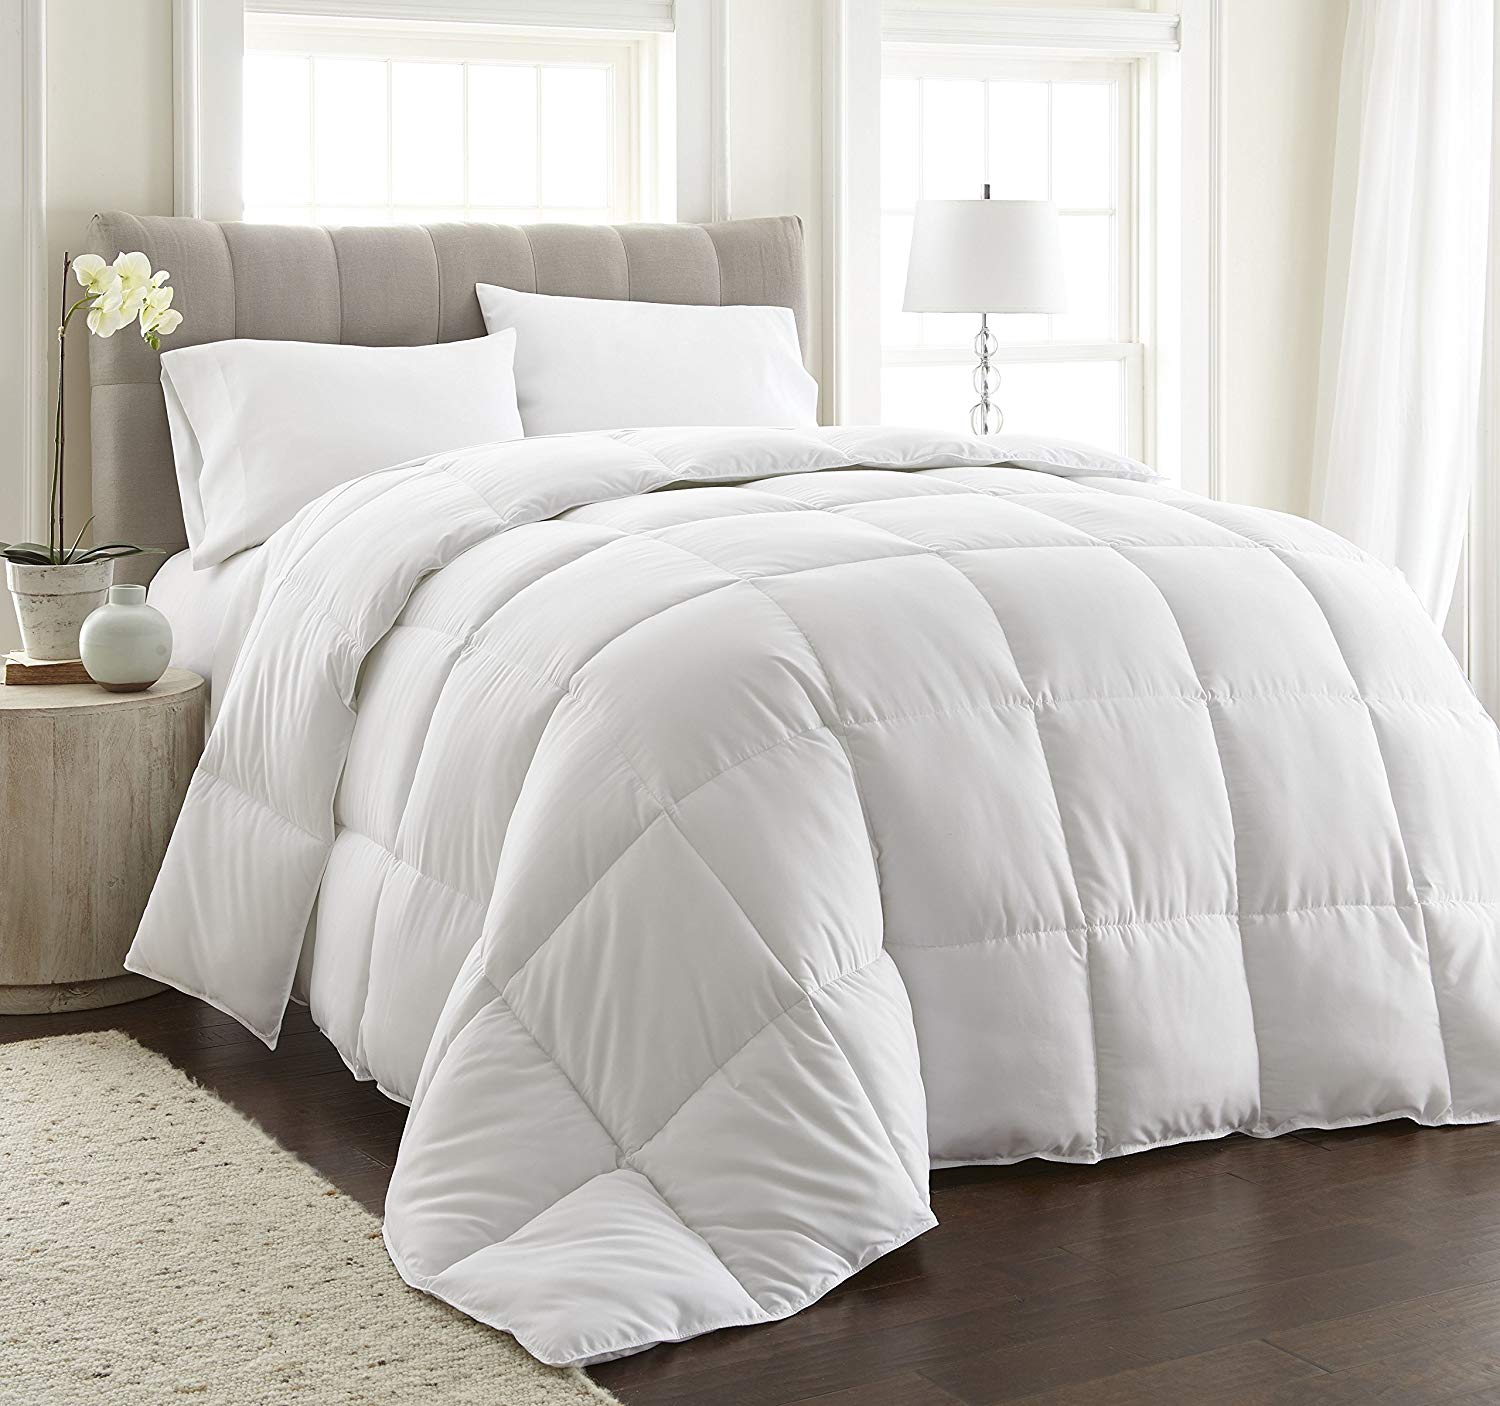 Buy Chezmoi Collection King Goose Down Alternative Comforter